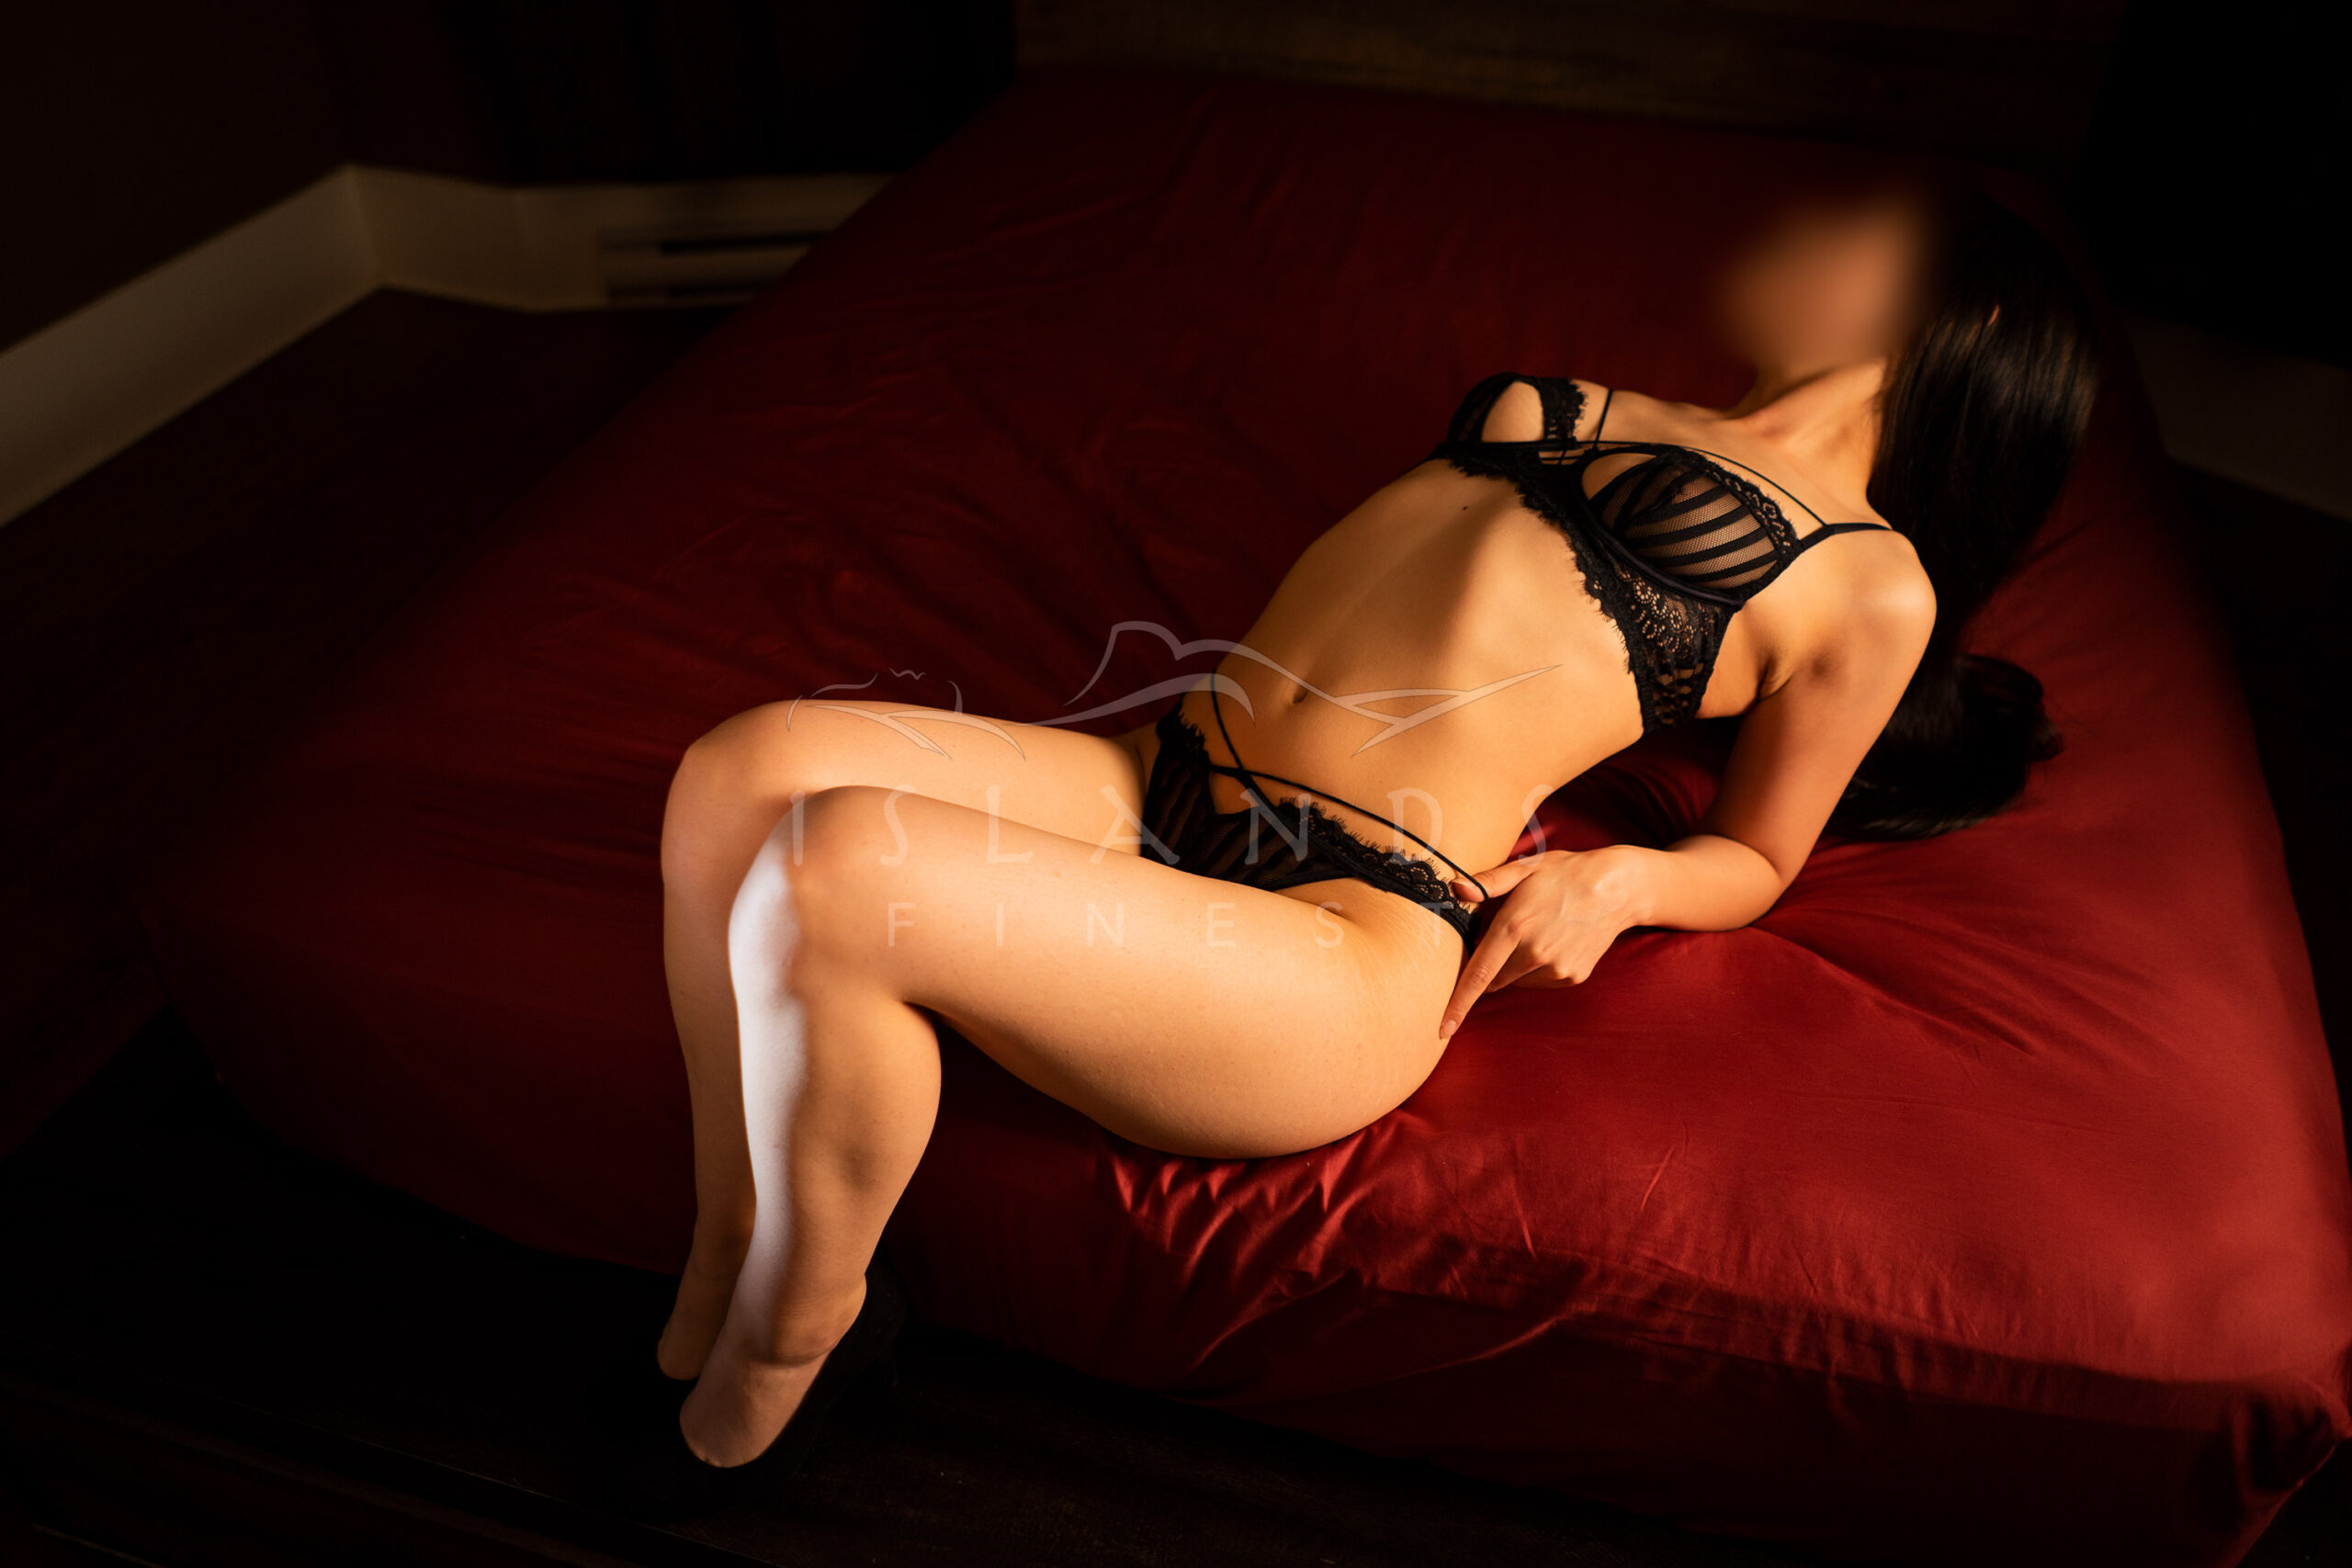 Escort Trinity lying on a bed at Island's Finest escort agency in Victoria, BC